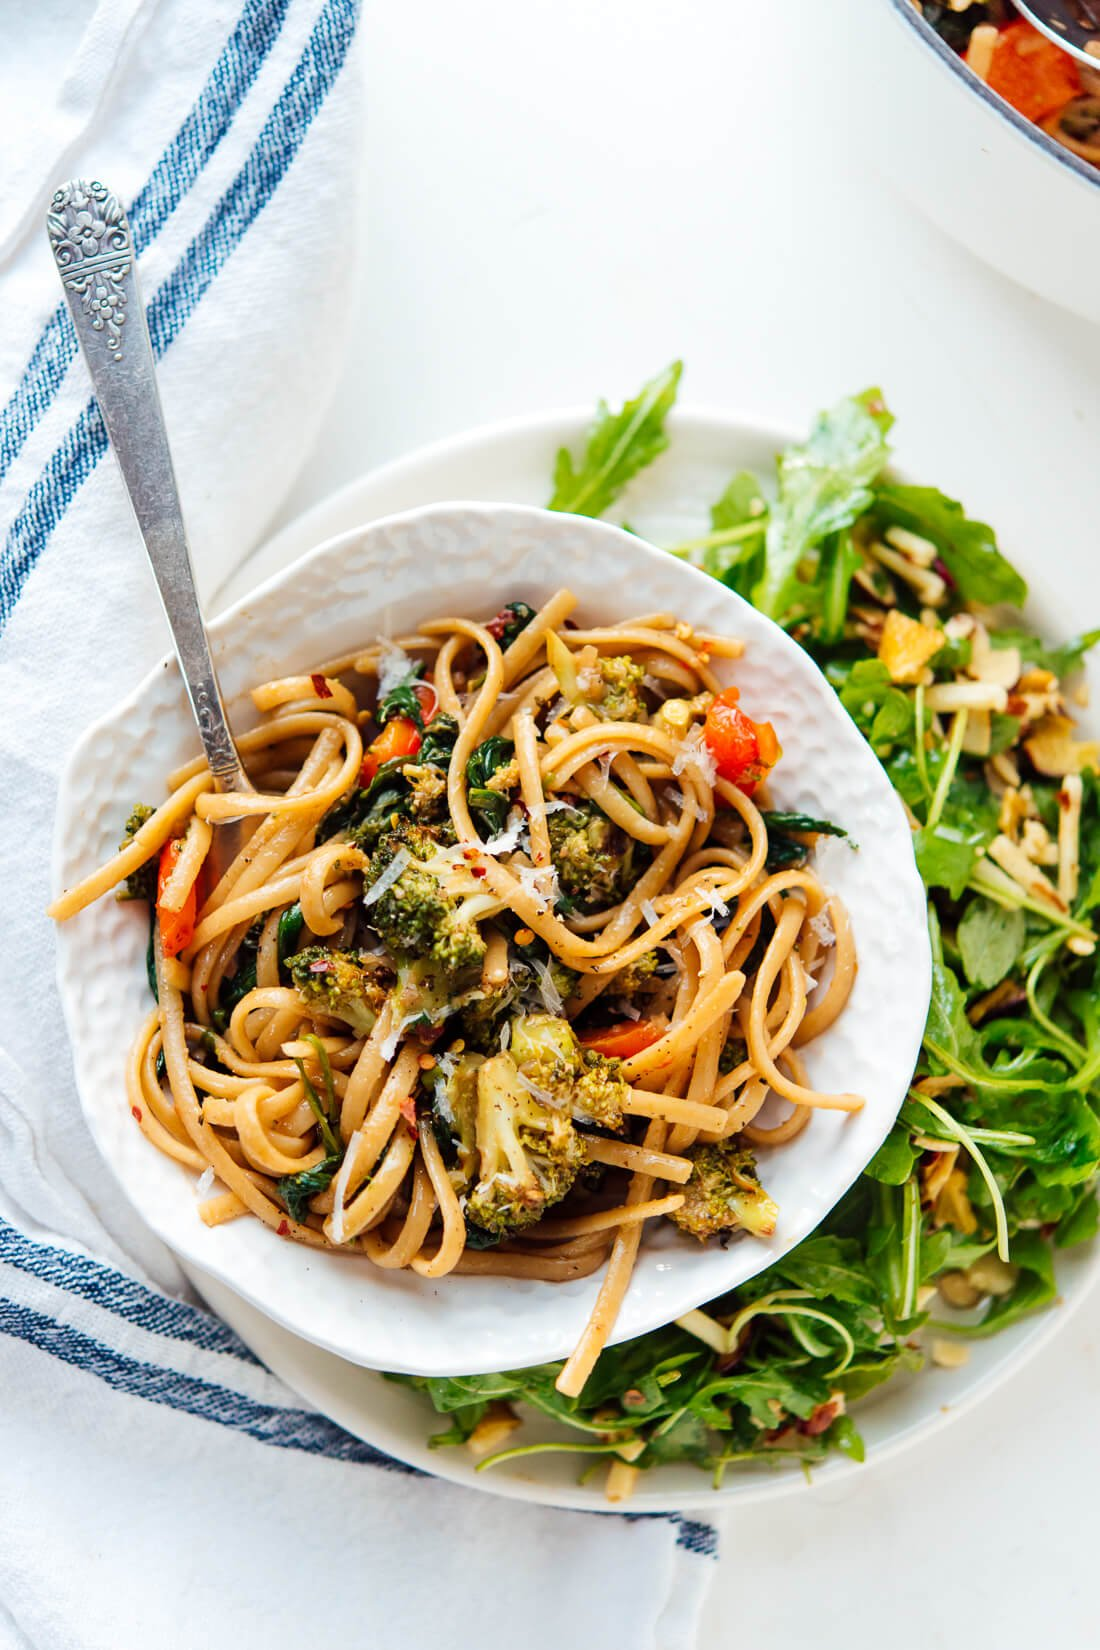 Spinach pasta with roasted broccoli and bell pepper